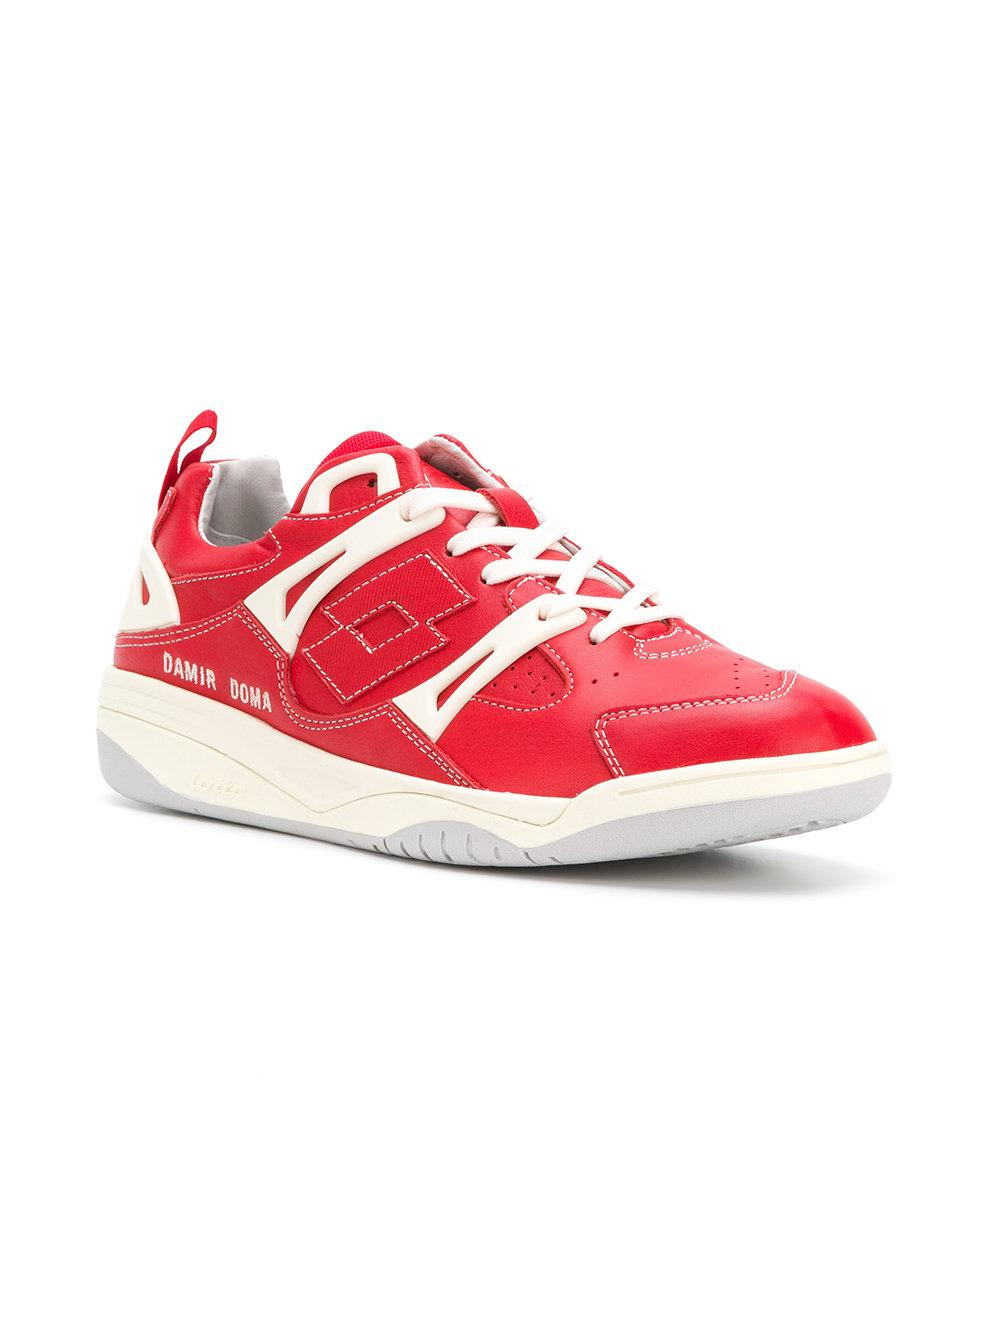 Damir Doma Leather Panelled Low-top Sneakers in Red